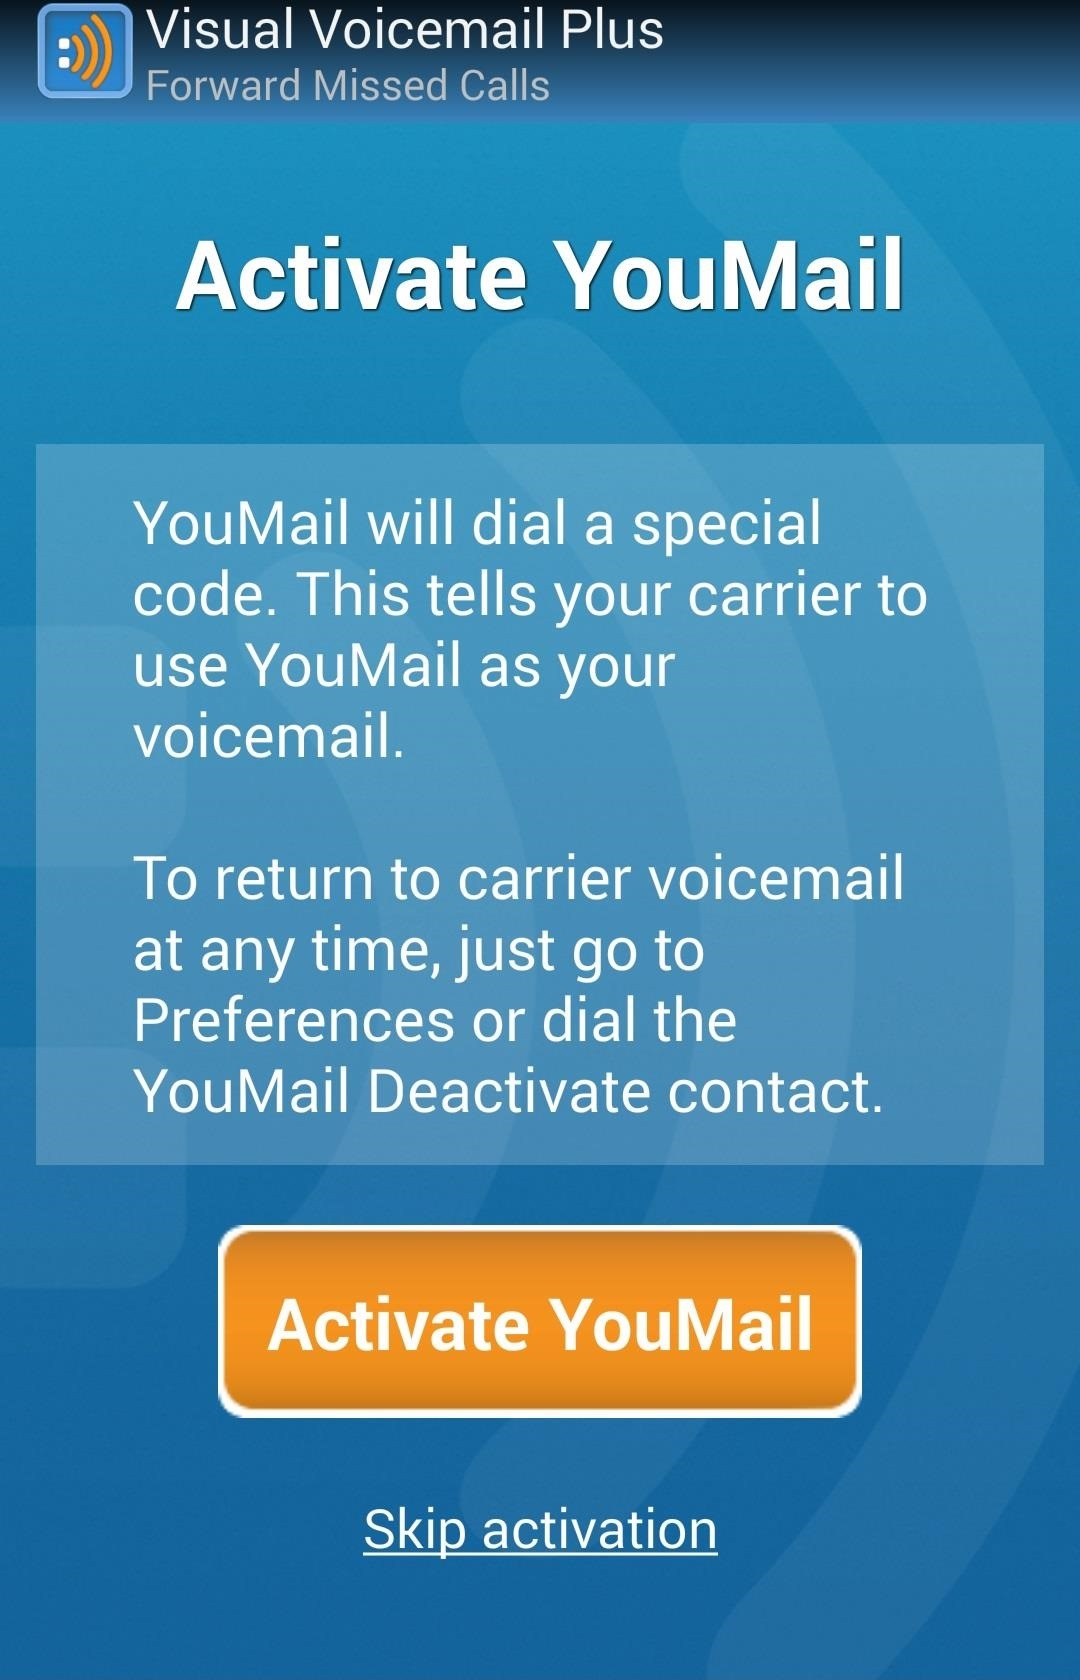 How to give your friends custom voicemail greetings unwanted its as easy as dialing your voicemail and entering the youmail phone number youre issued as your voicemail forwarding number m4hsunfo